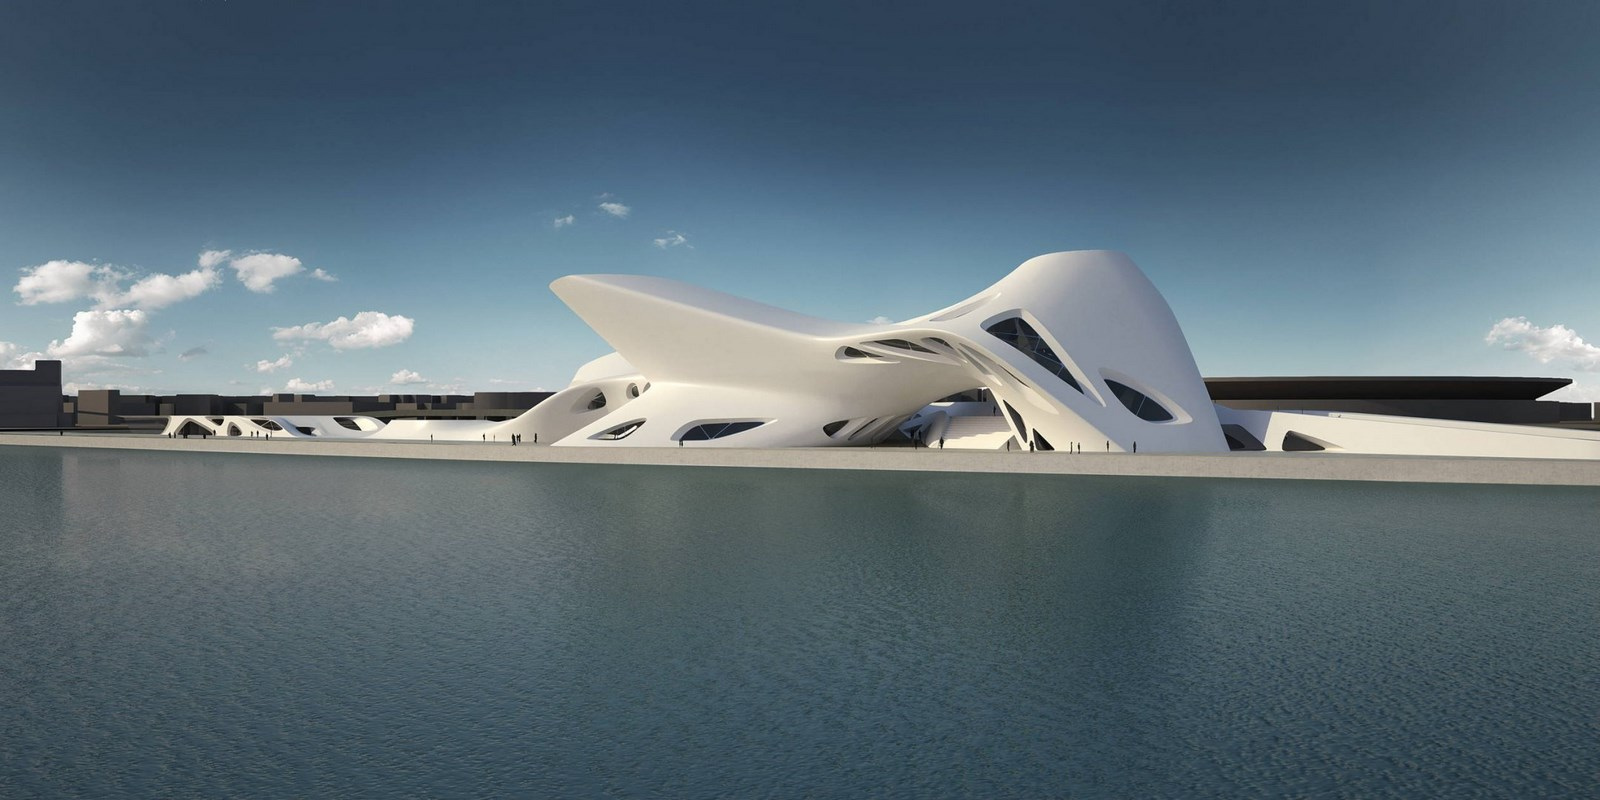 30 Projects That Define Zaha Hadid's Style - Nuragic and Contemporary Art Museum, Italy